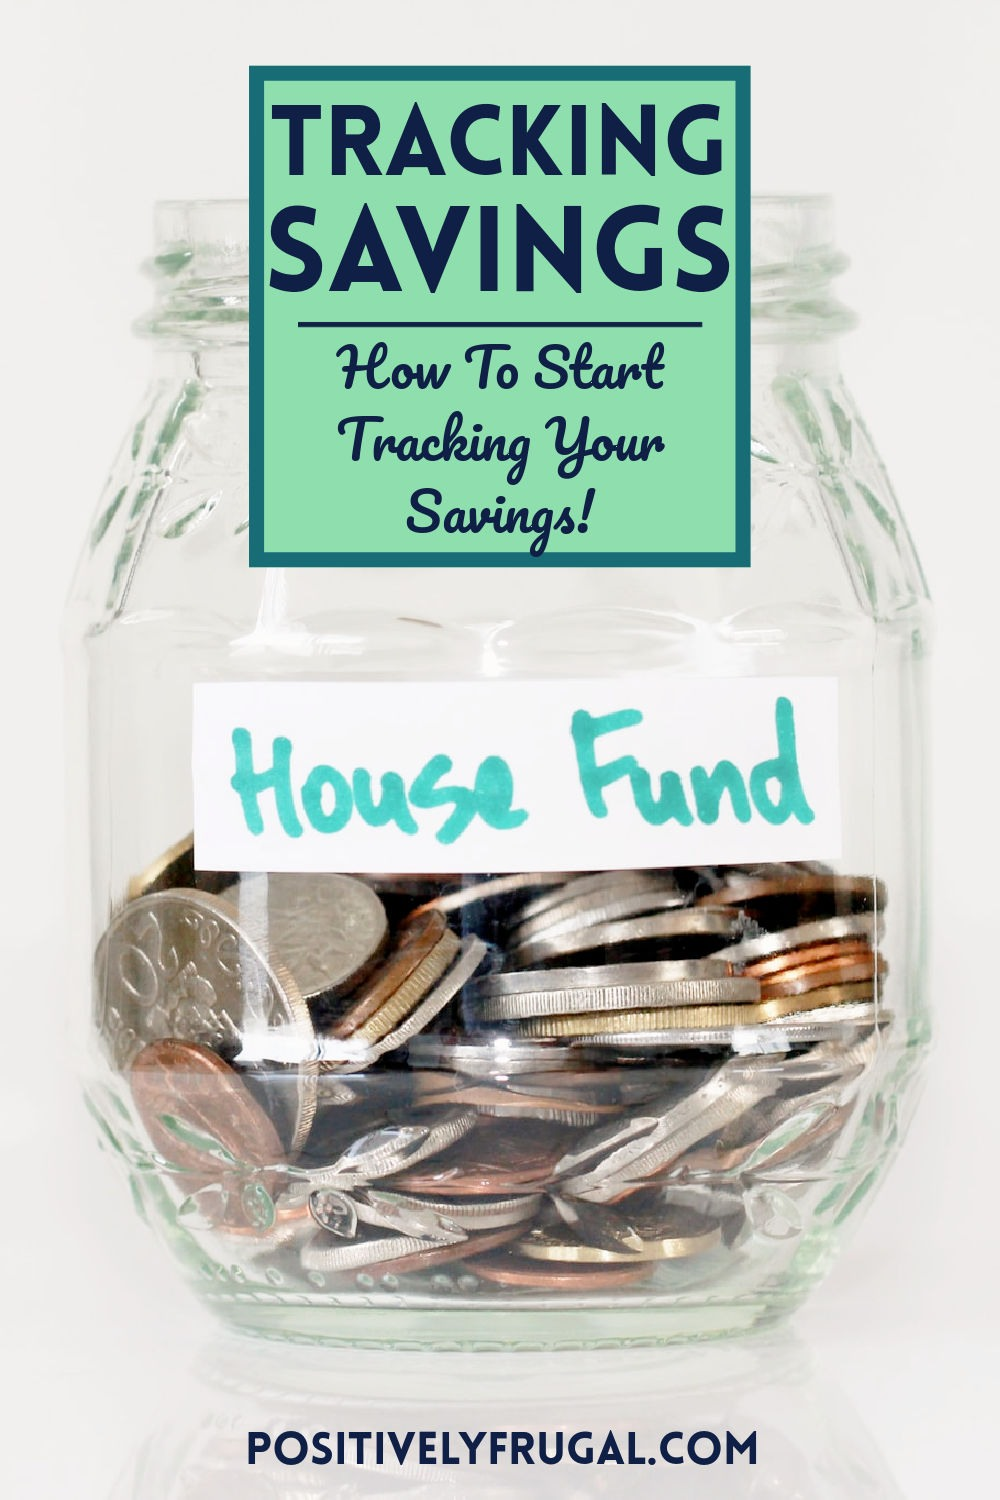 Tracking Savings How To Start Tracking Your Savings by PositivelyFrugal.com